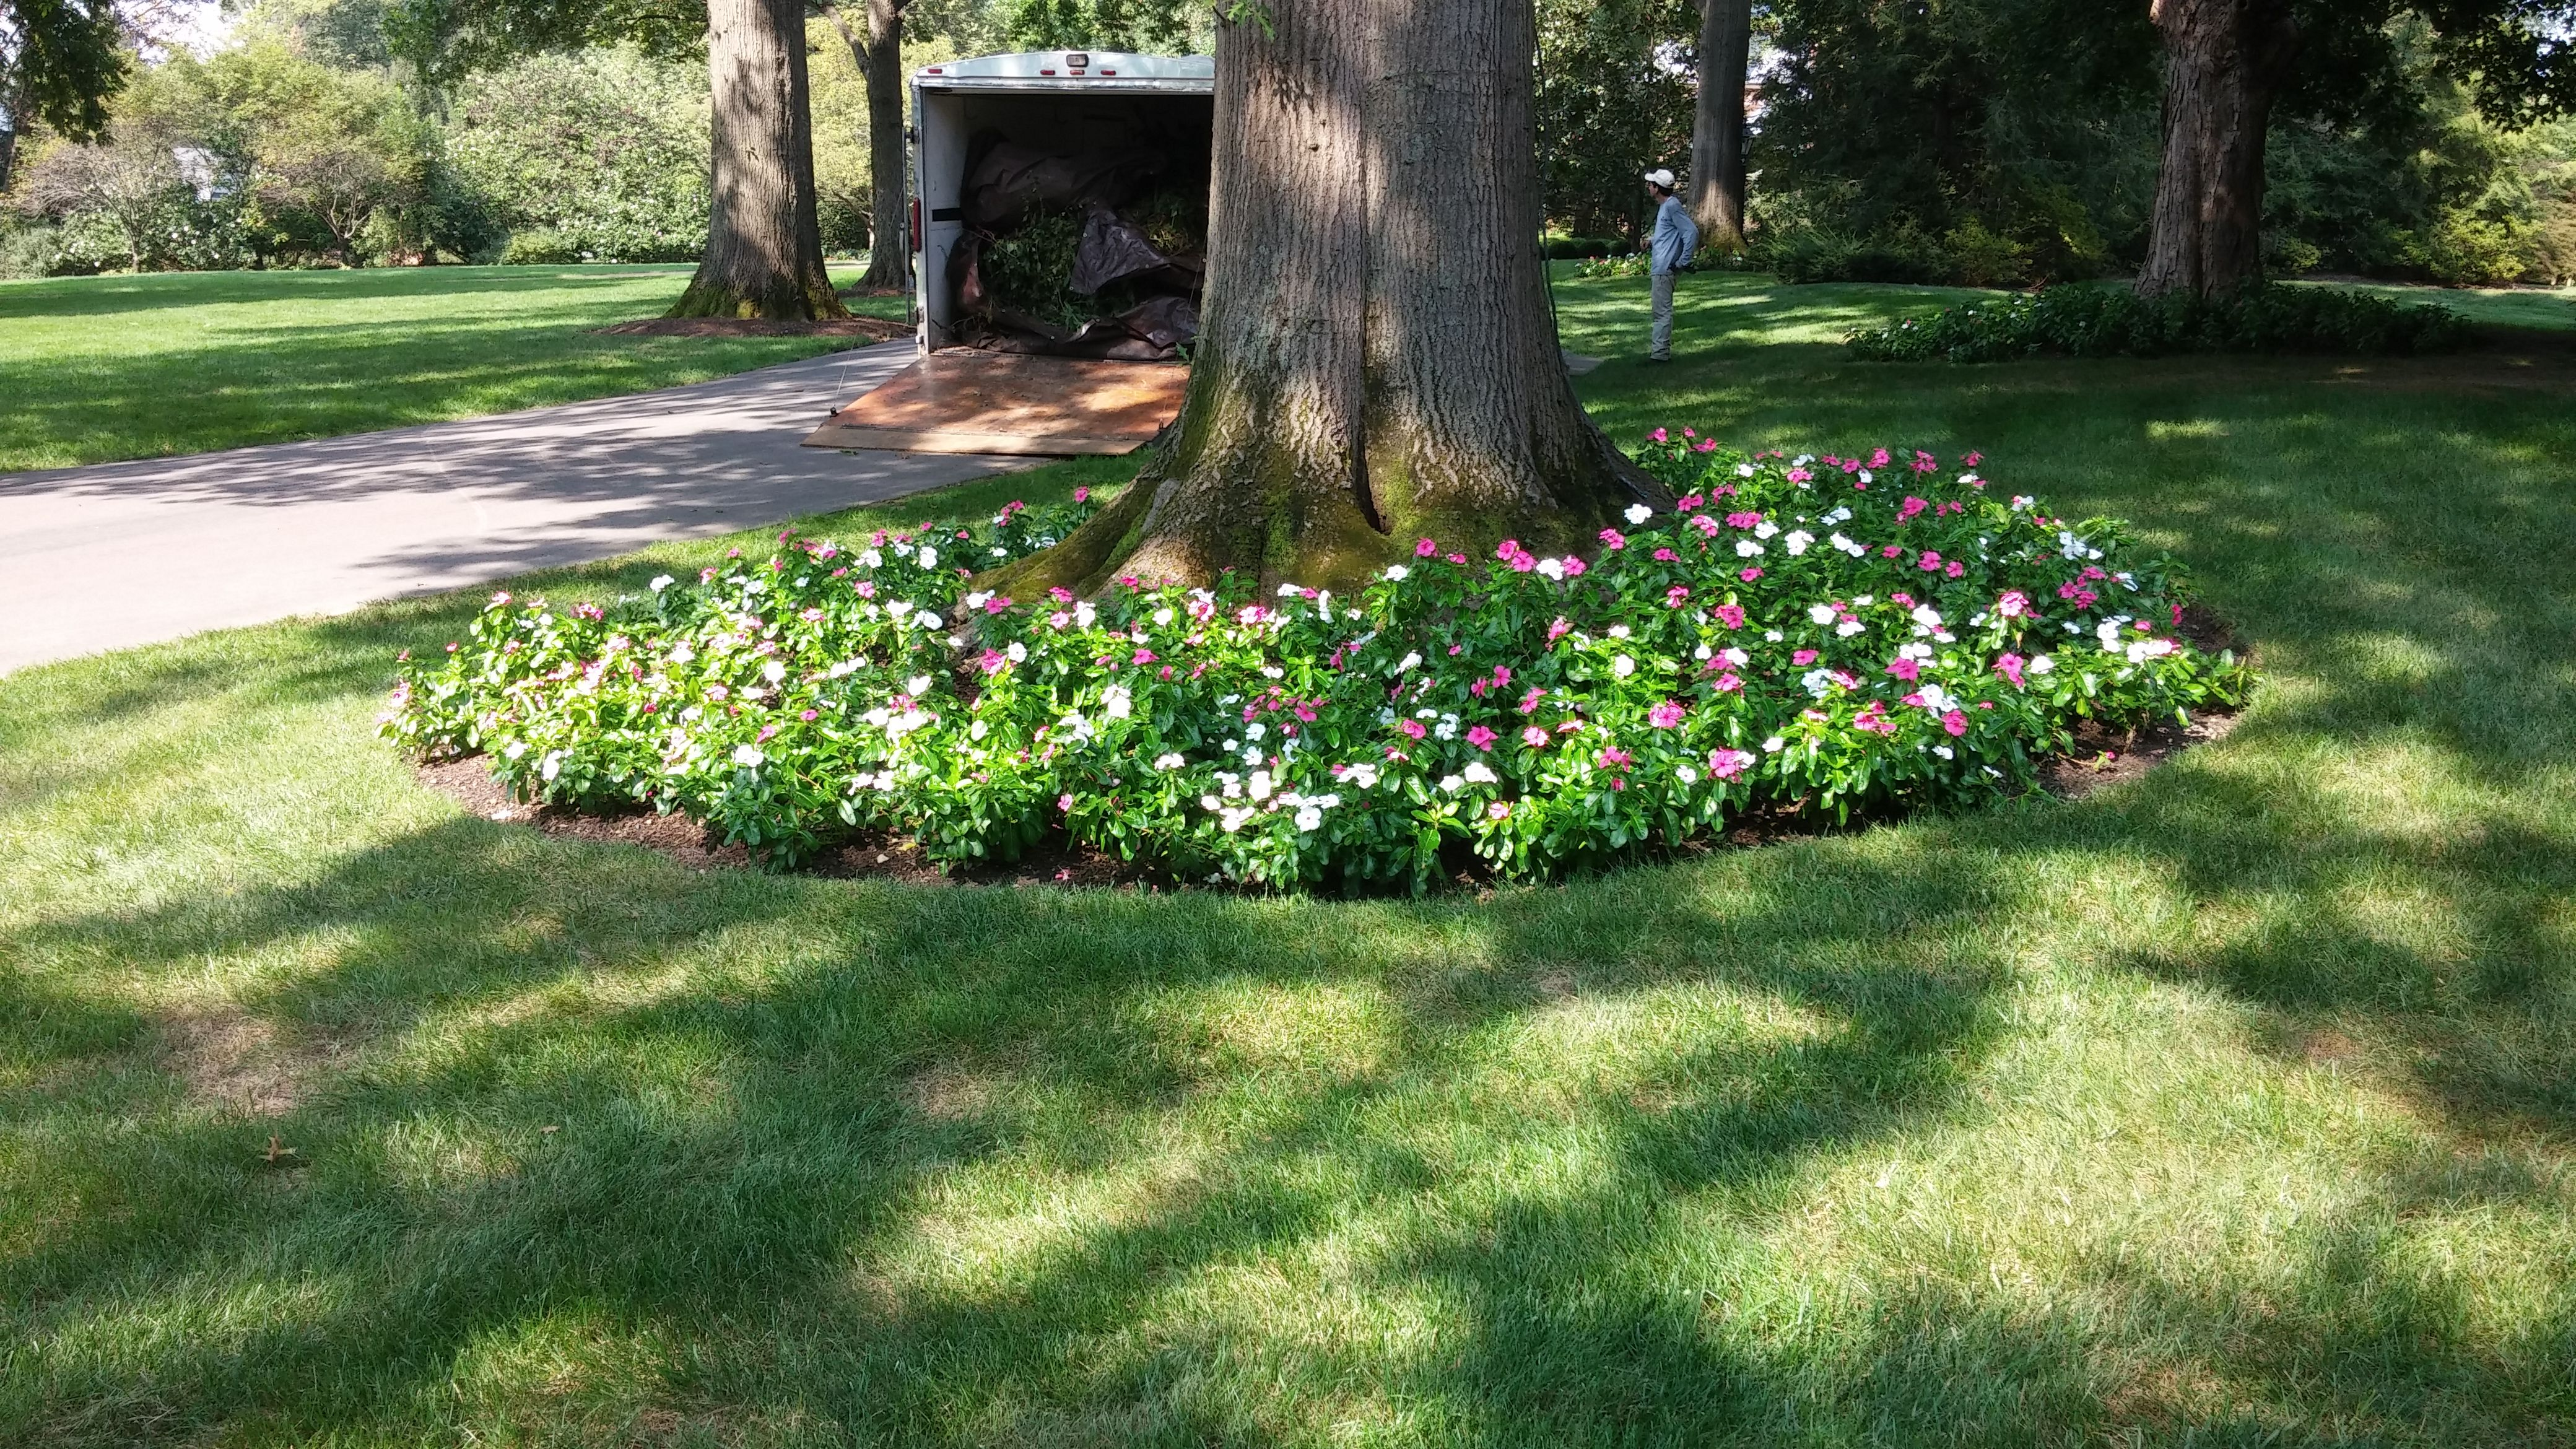 Planting Annual Flowers In The Mulch Of Your Tree Rings Can Be A